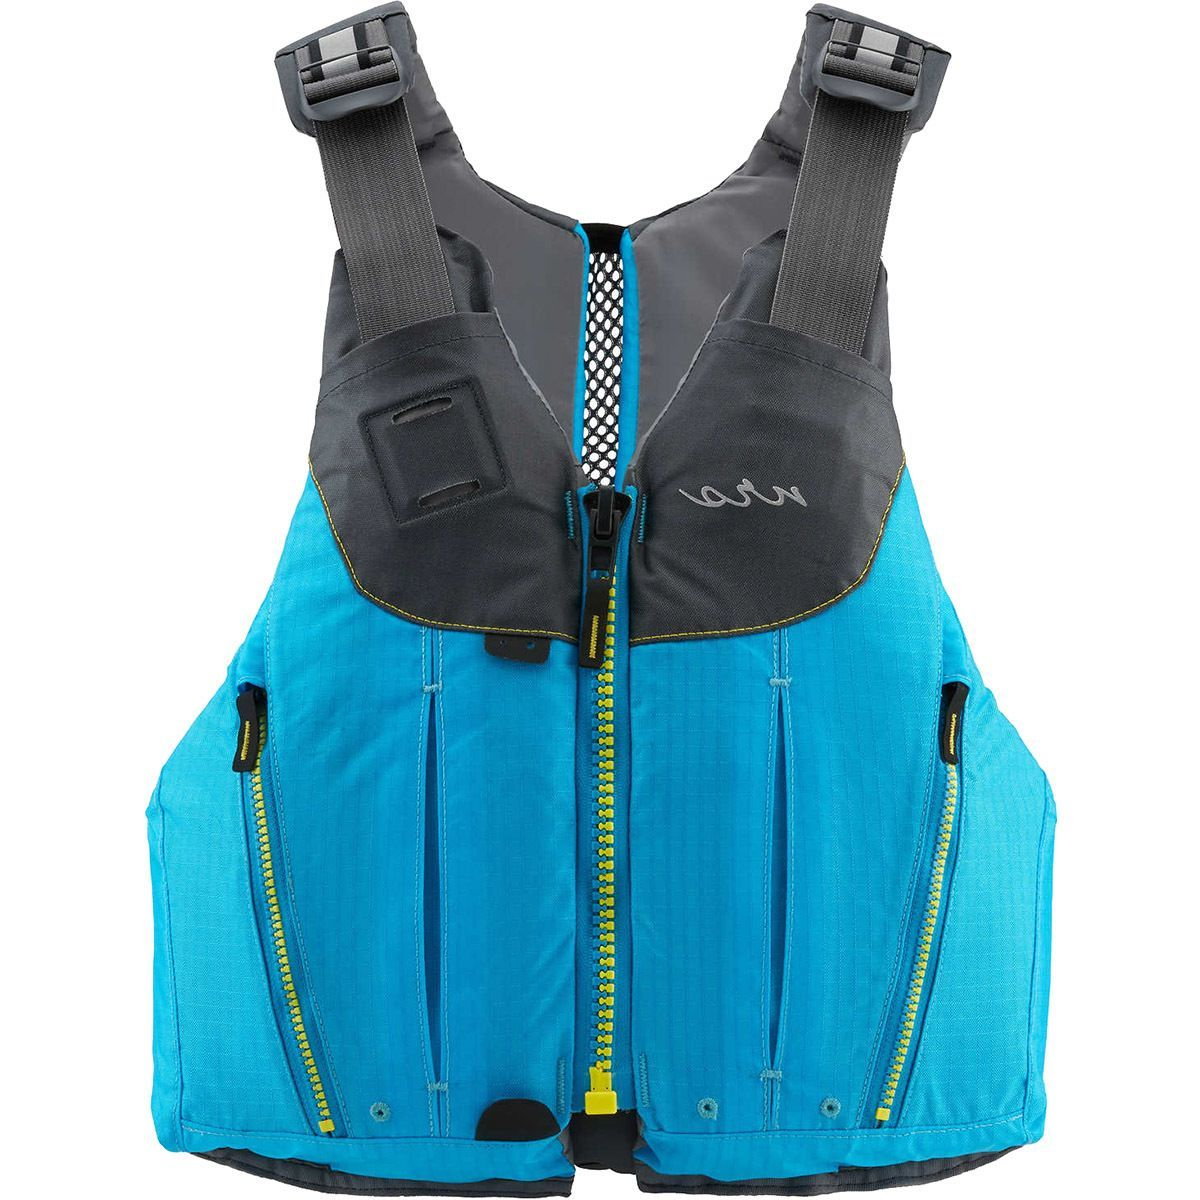 NRS Nora Personal Flotation Device - Women's